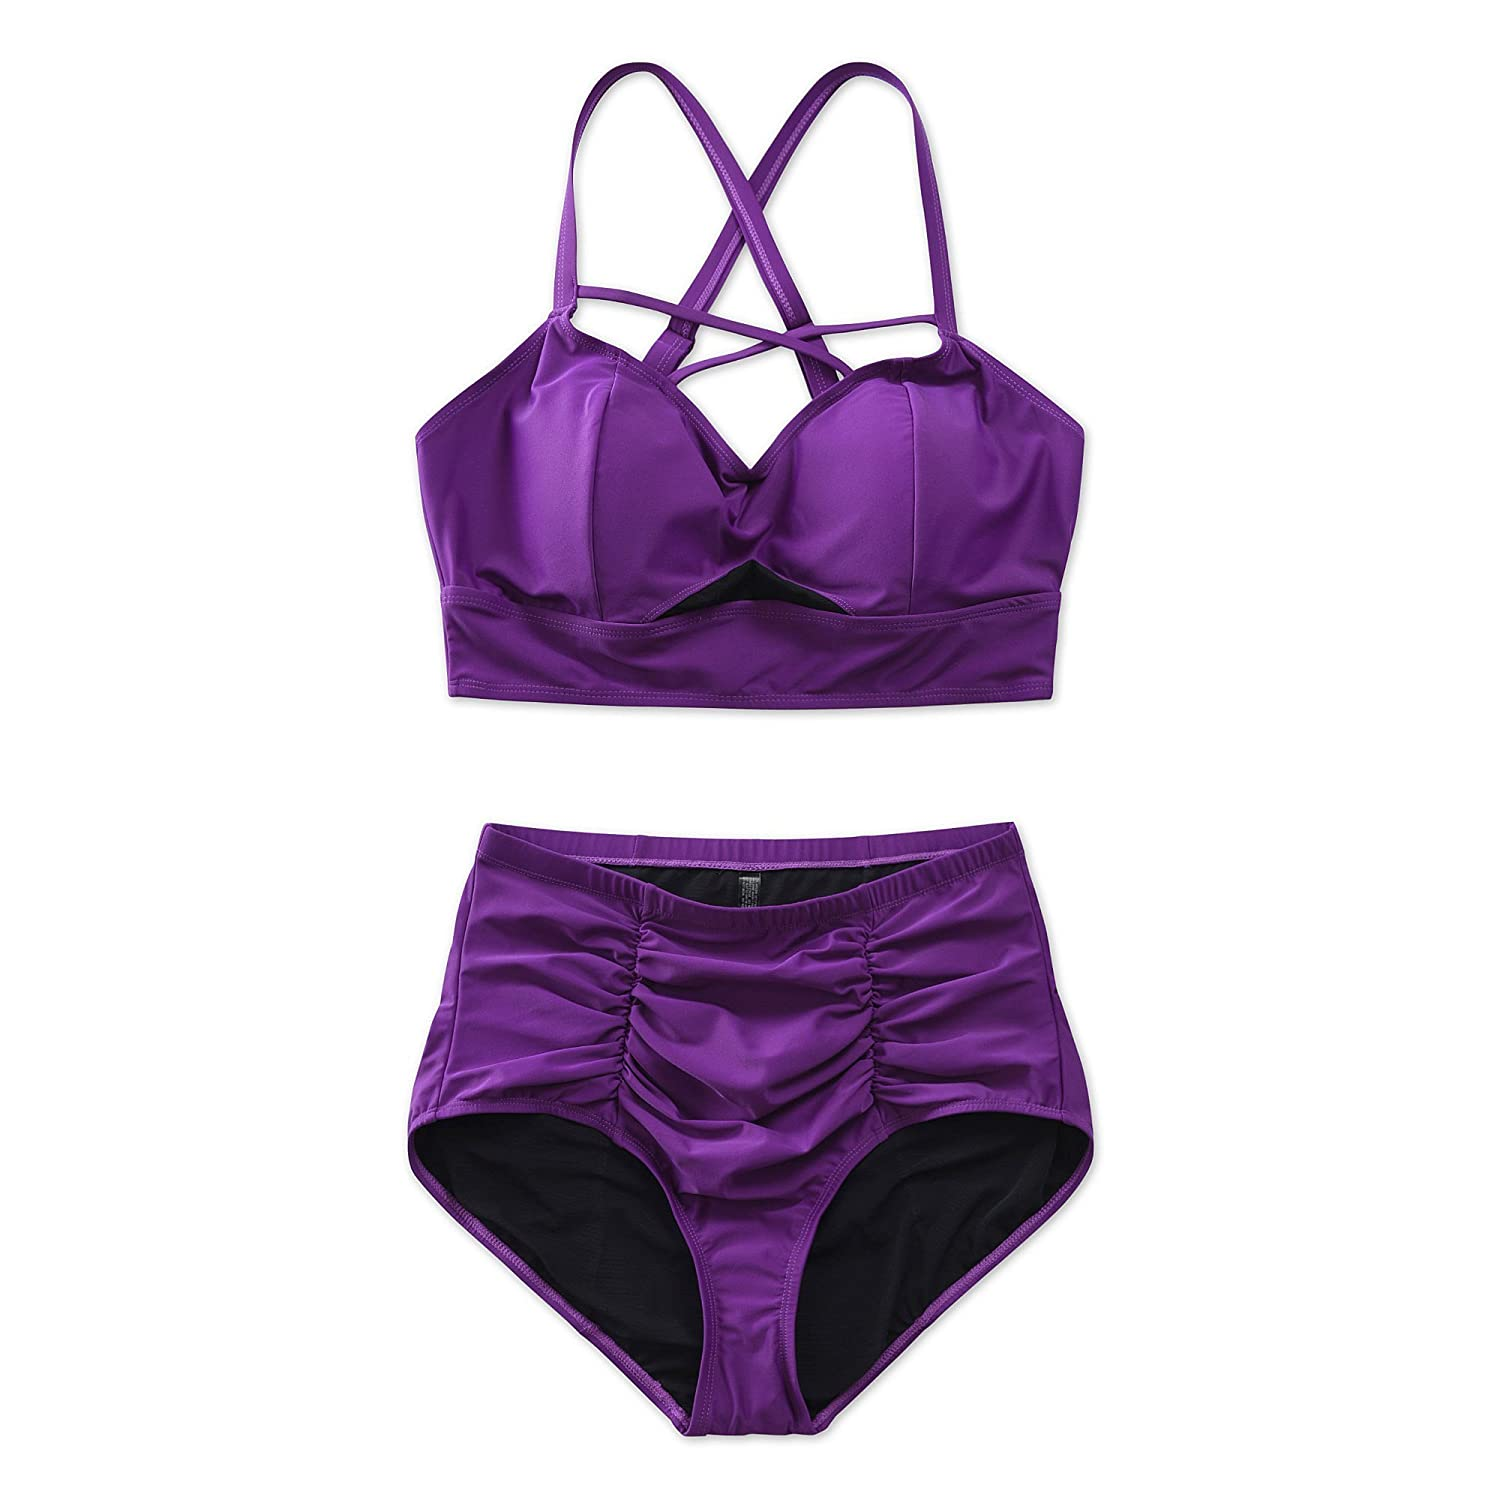 de6a8c0f7c Two-piece V-neck top with lattice detail, high waist cut leg bikini bottom  swimsuit in unique elegant violet purple style you appealing to the eye  whenever ...